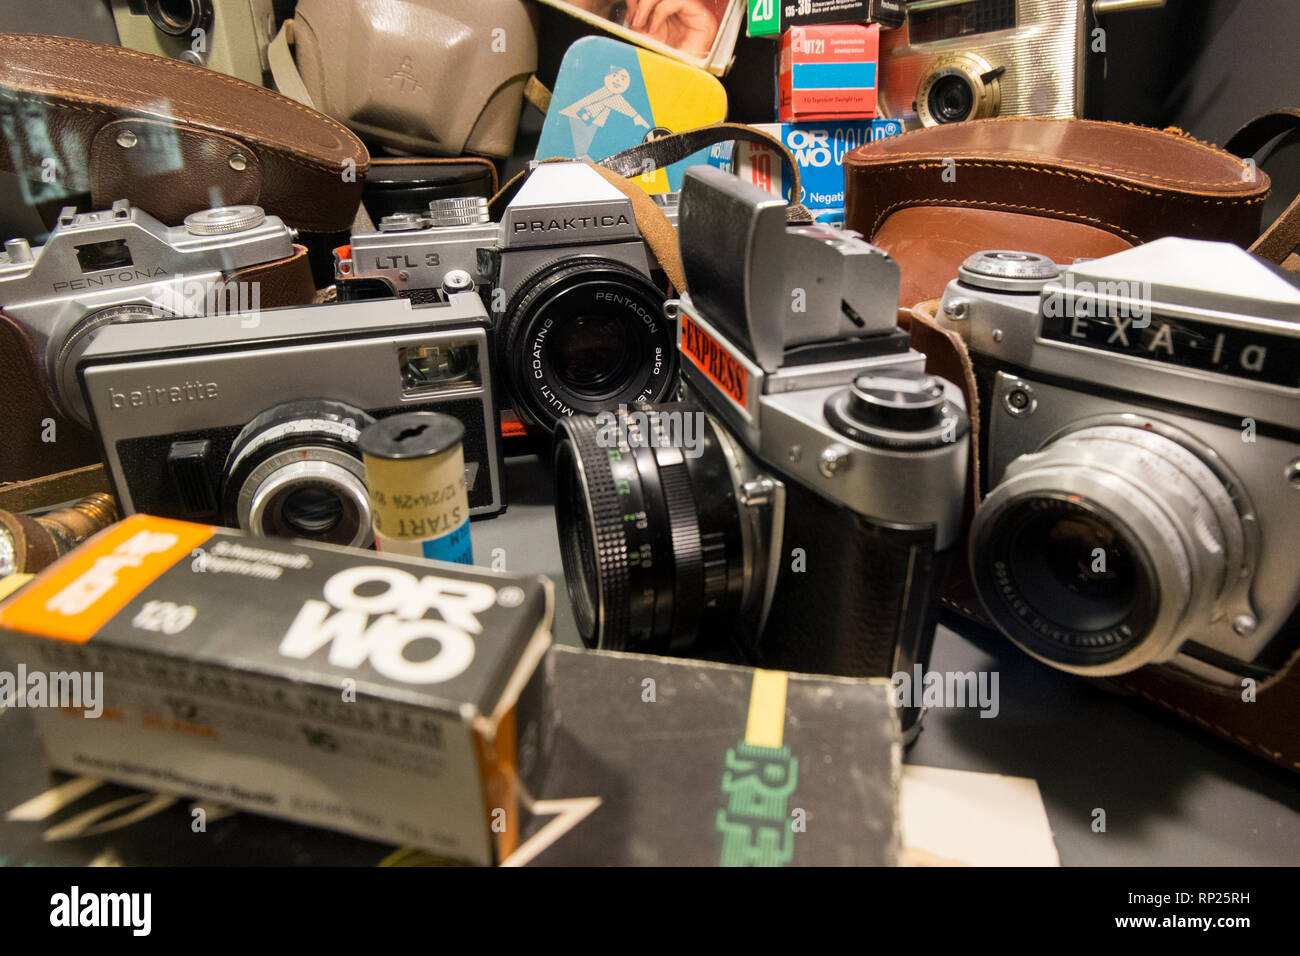 The DDR museum in Berlin, Germany. Iron Curtain cameras. - Stock Image